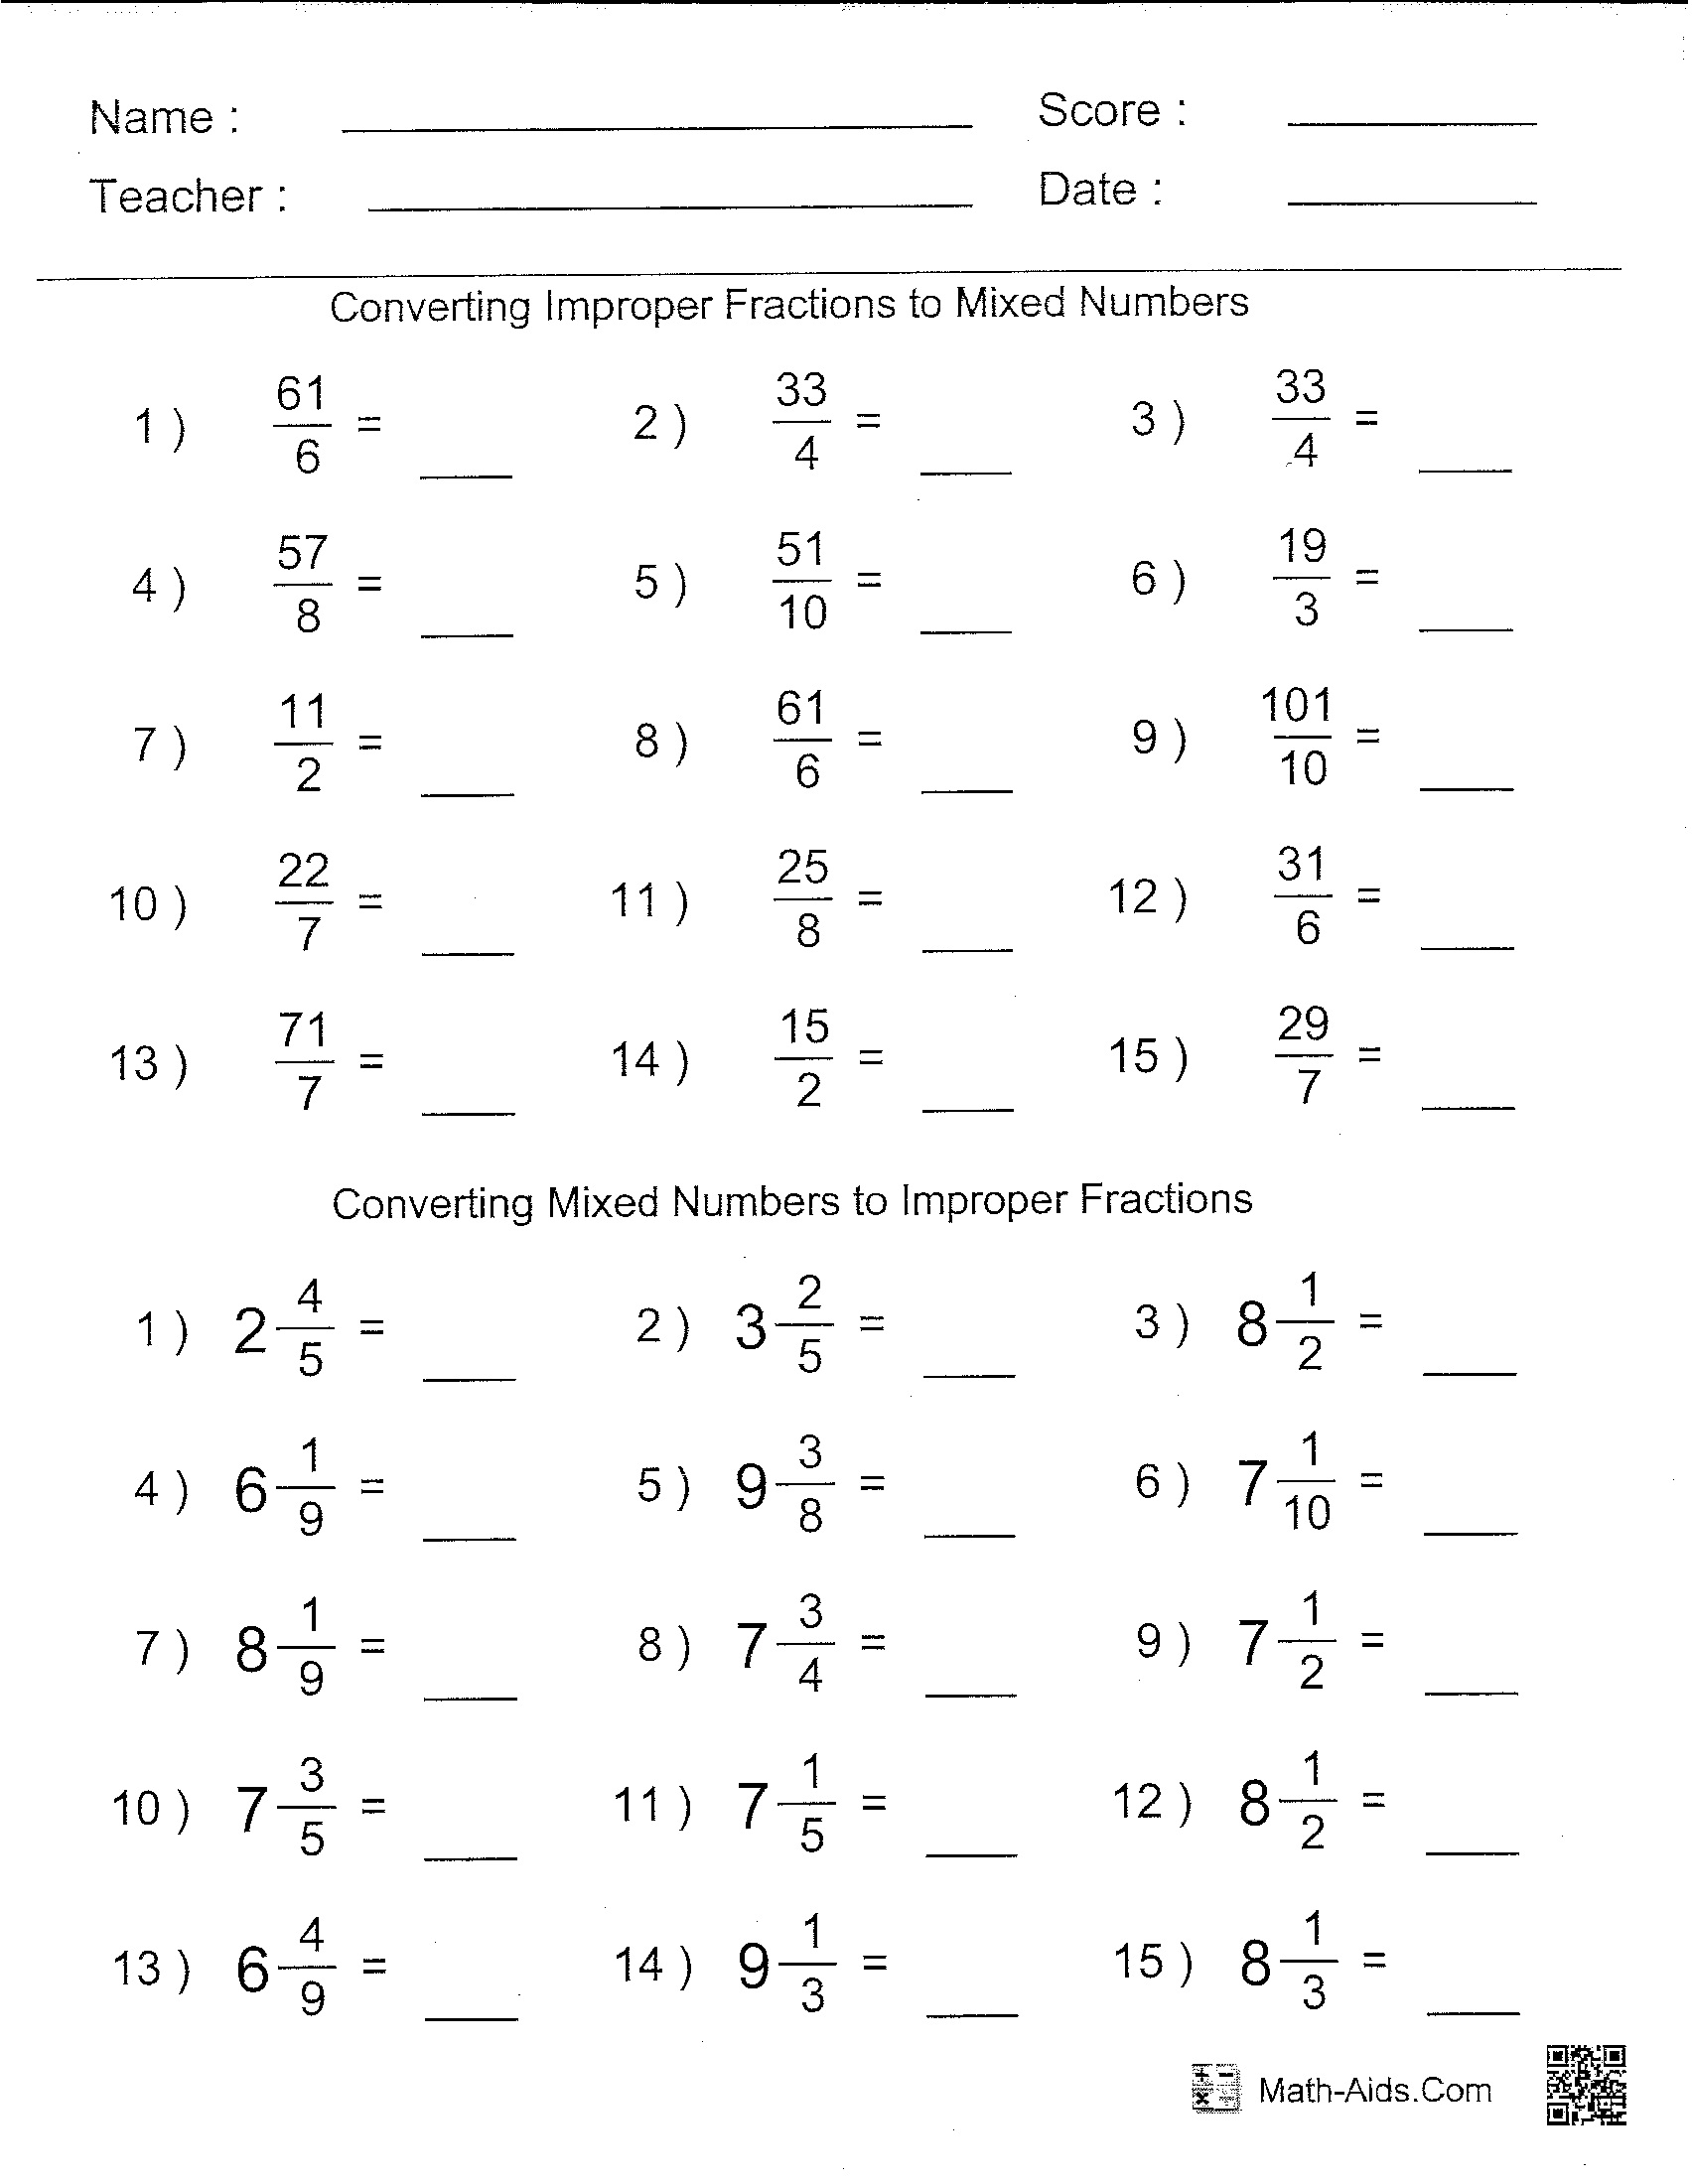 6th Grade Math Worksheets Printable Math Worksheets For Grade 6 Math Blaster